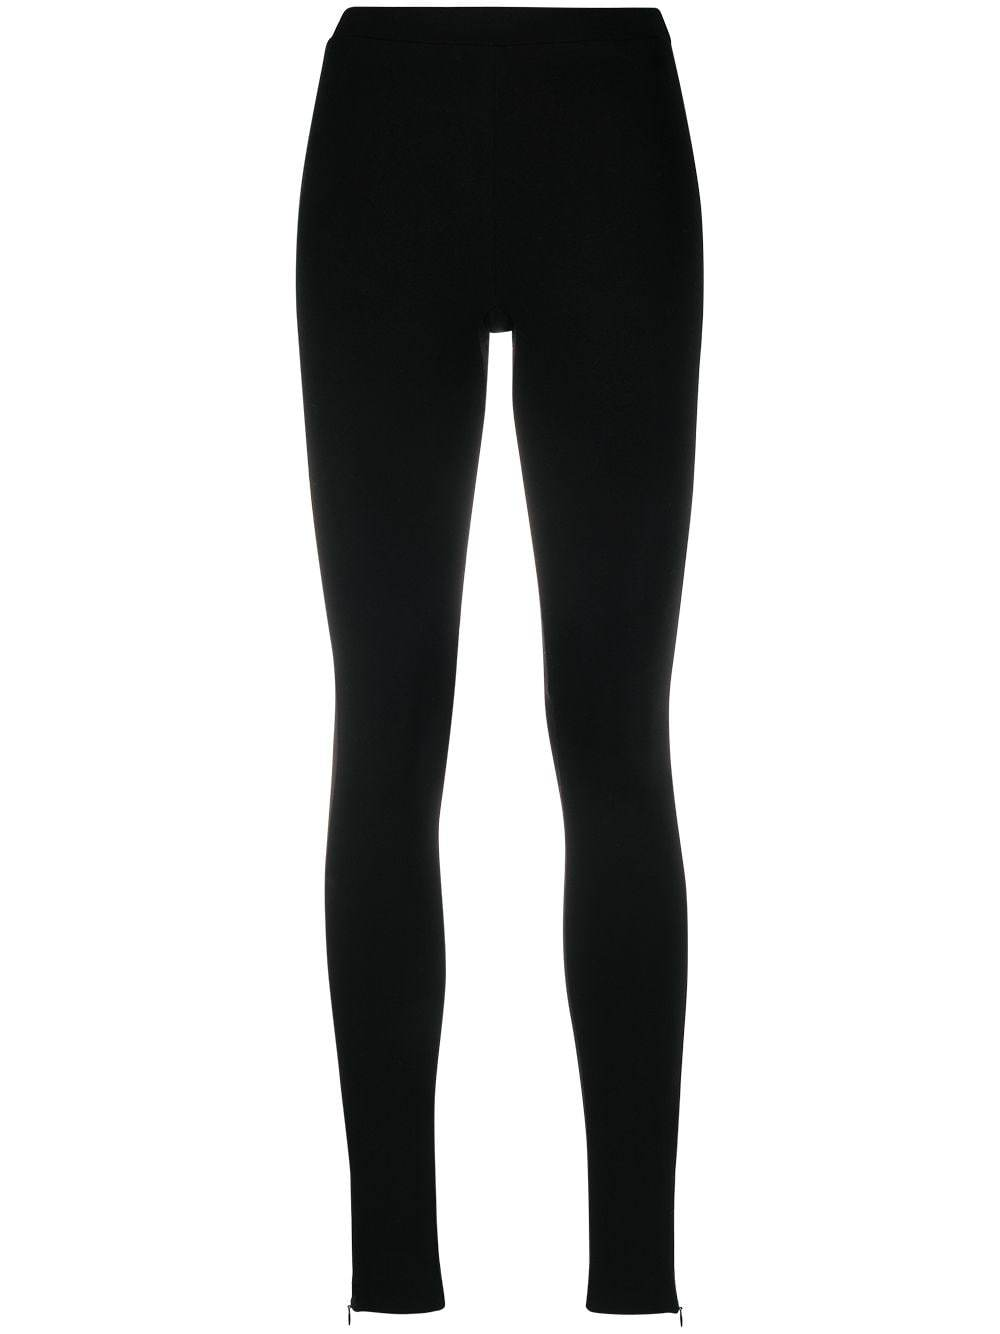 TOTEME-STUDIO Trousers Black